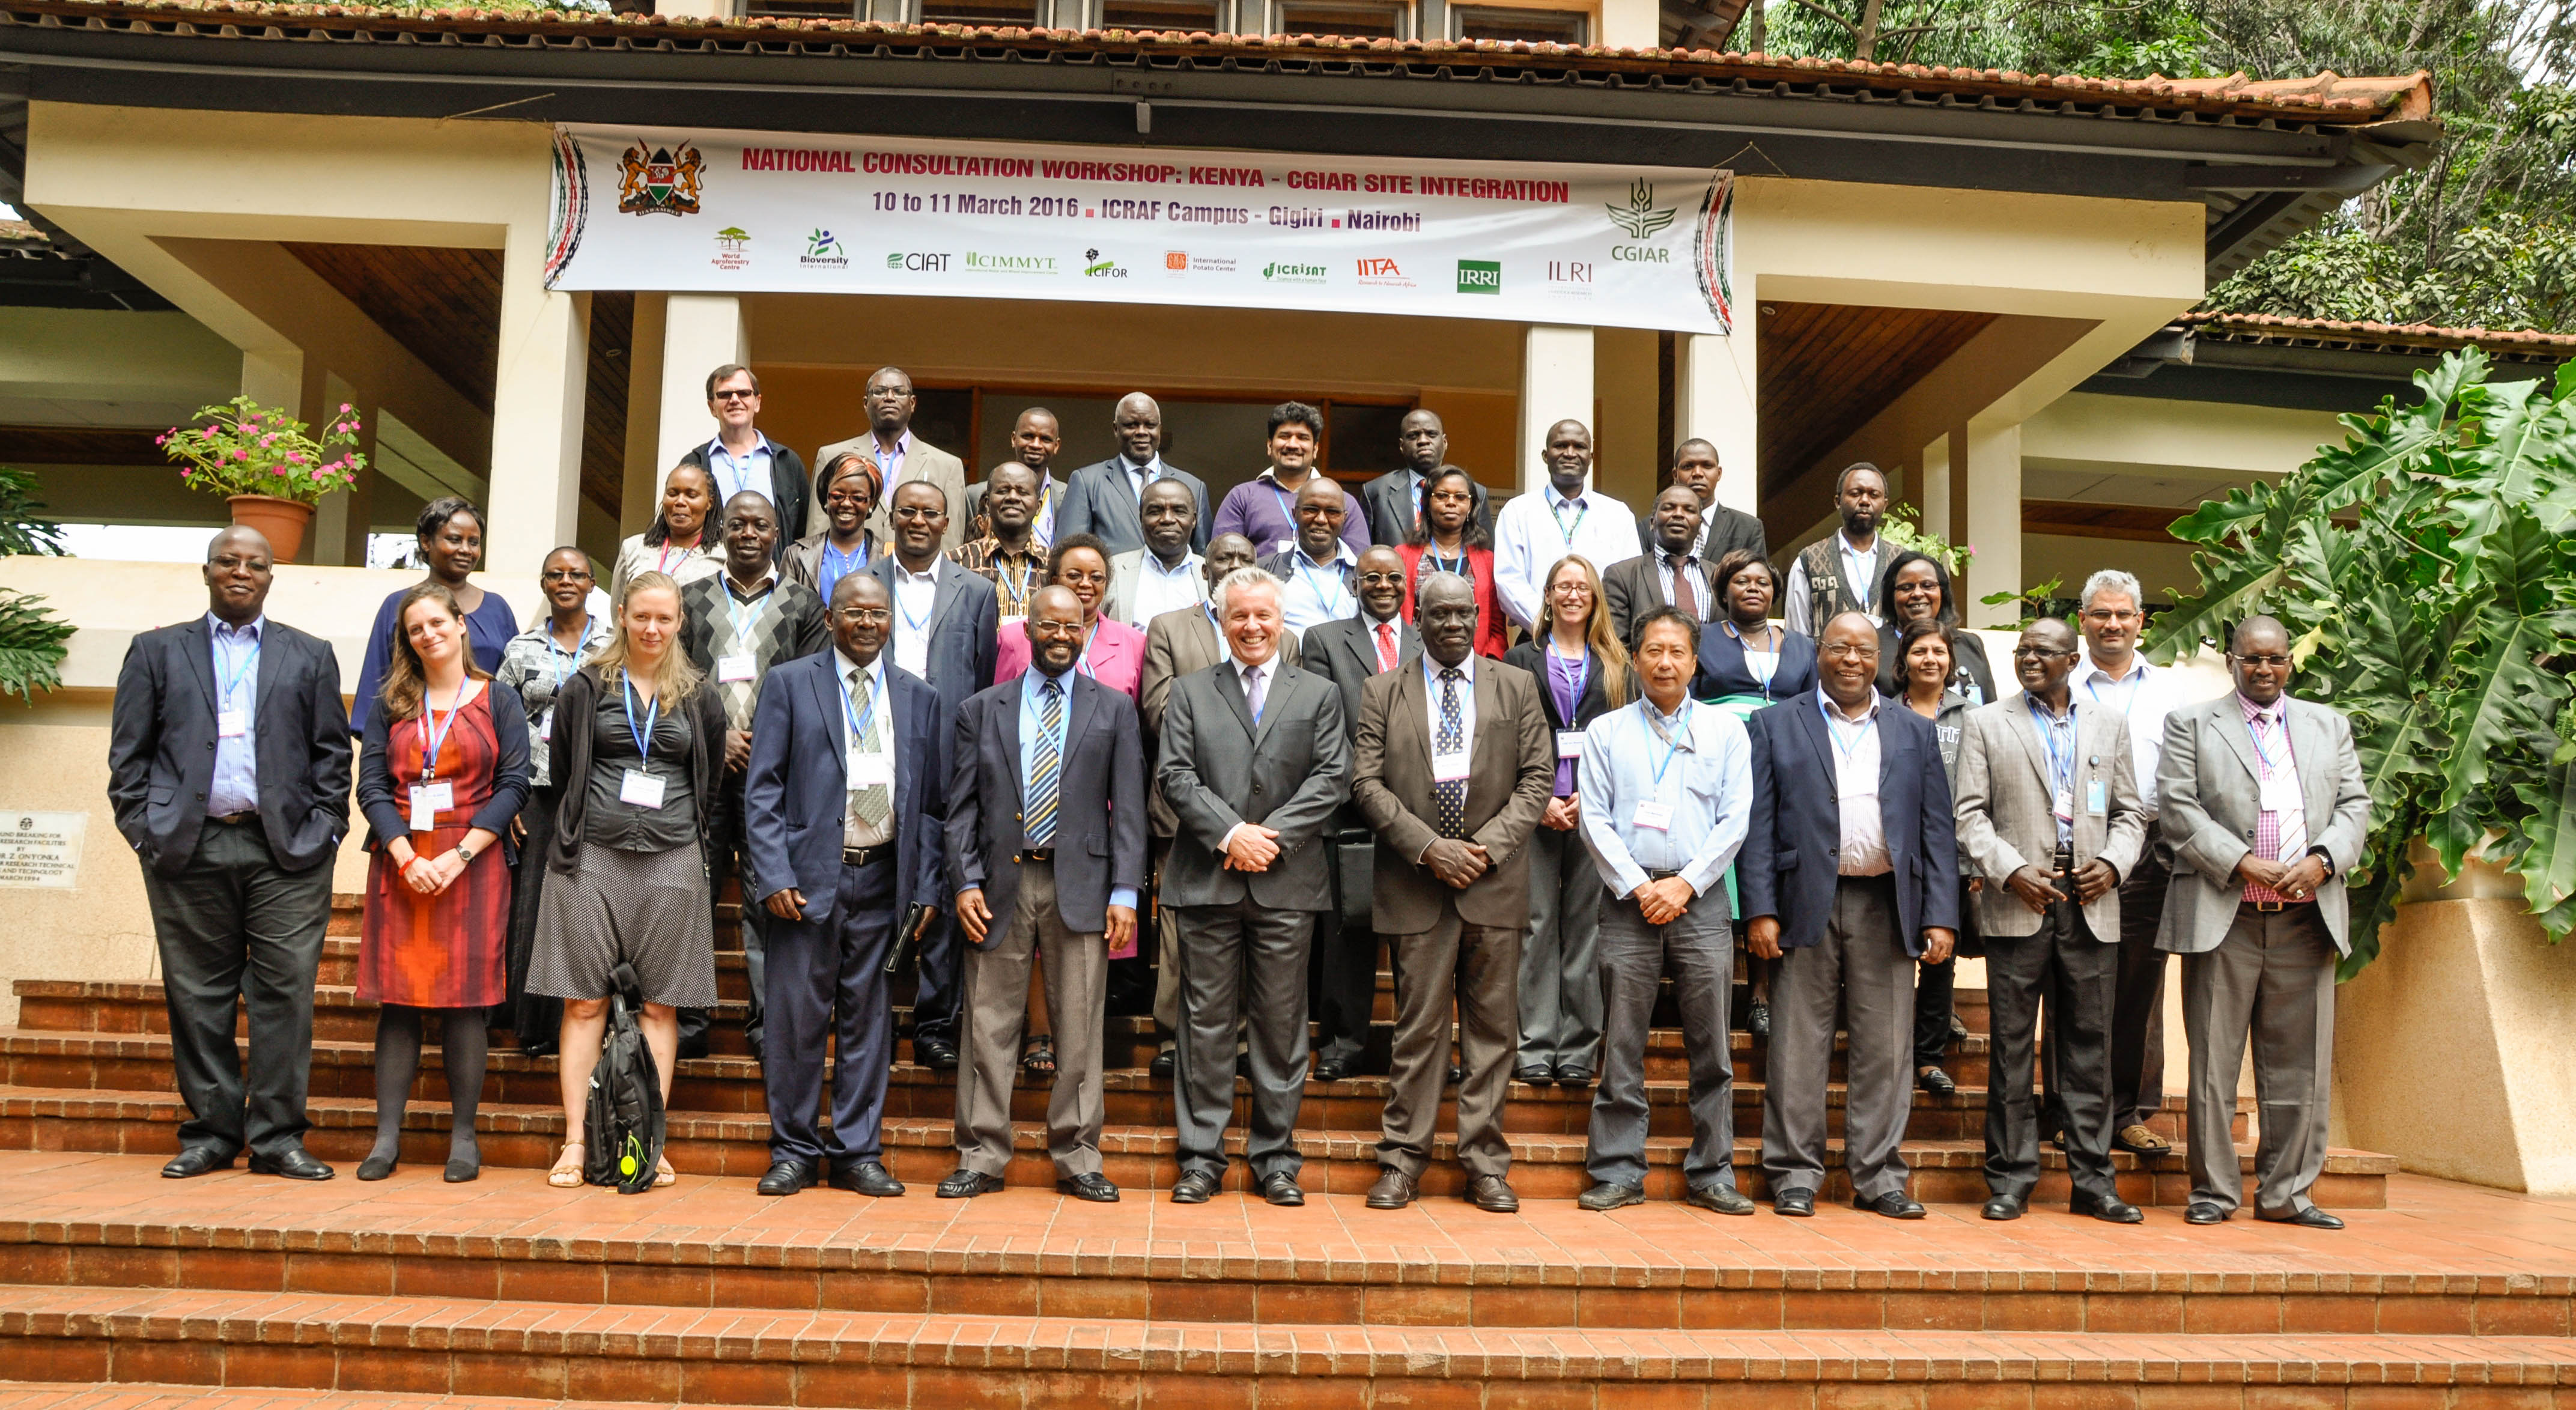 Group photo. By Danyell Odhiambo/ICRAF